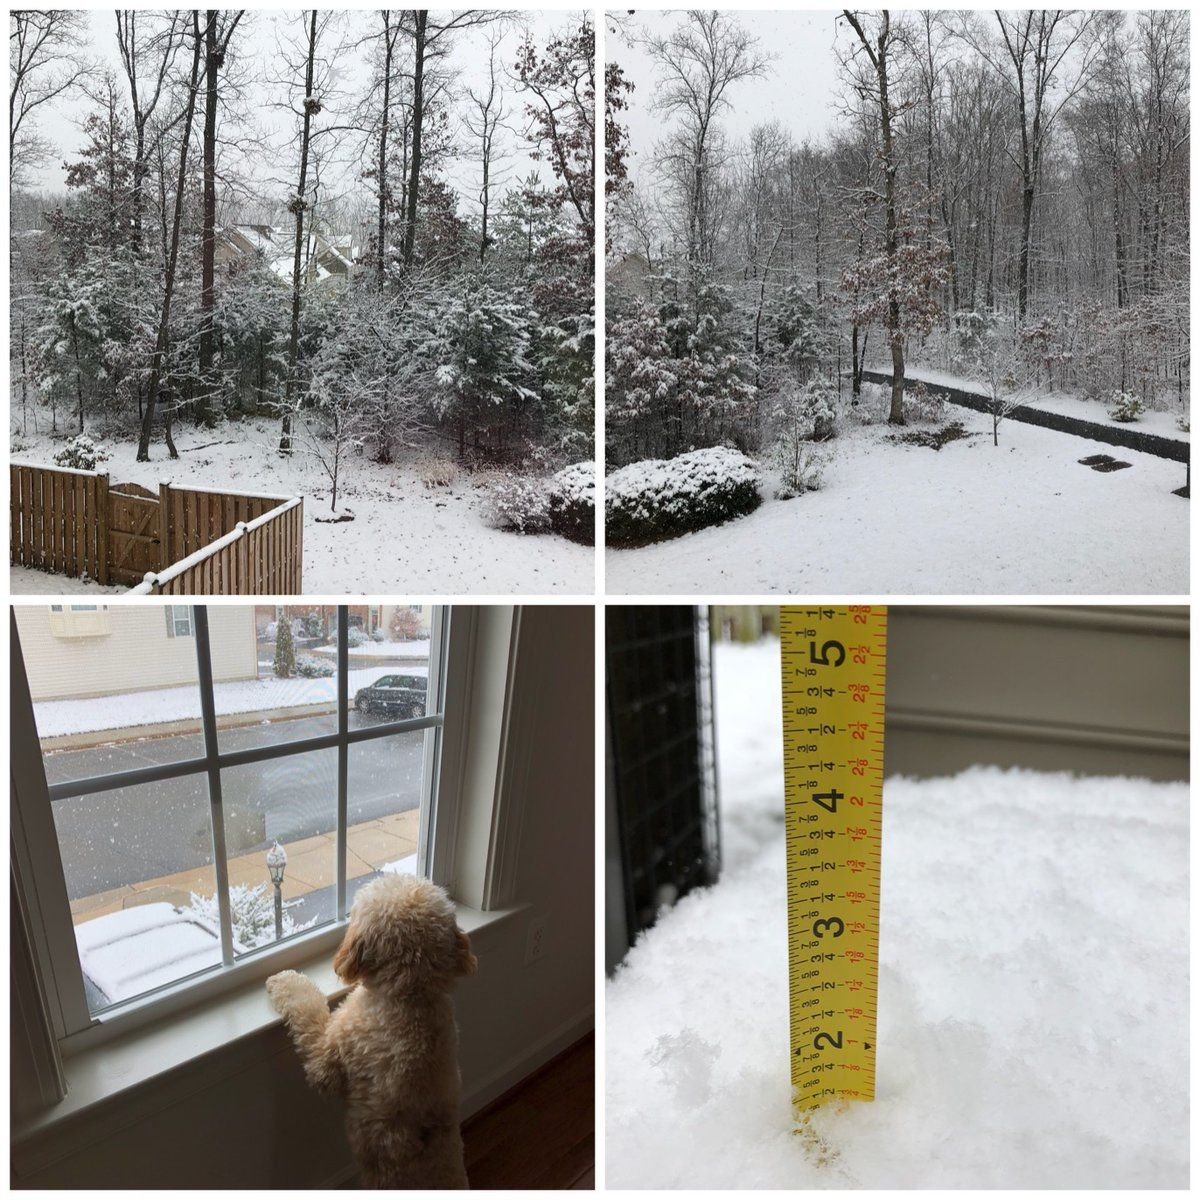 Twitter user @sarahm_Nova said the snow was still coming down at around 2 p.m. in Loudoun County, Virginia. (Courtesy Twitter/@sarahm_NoVa)